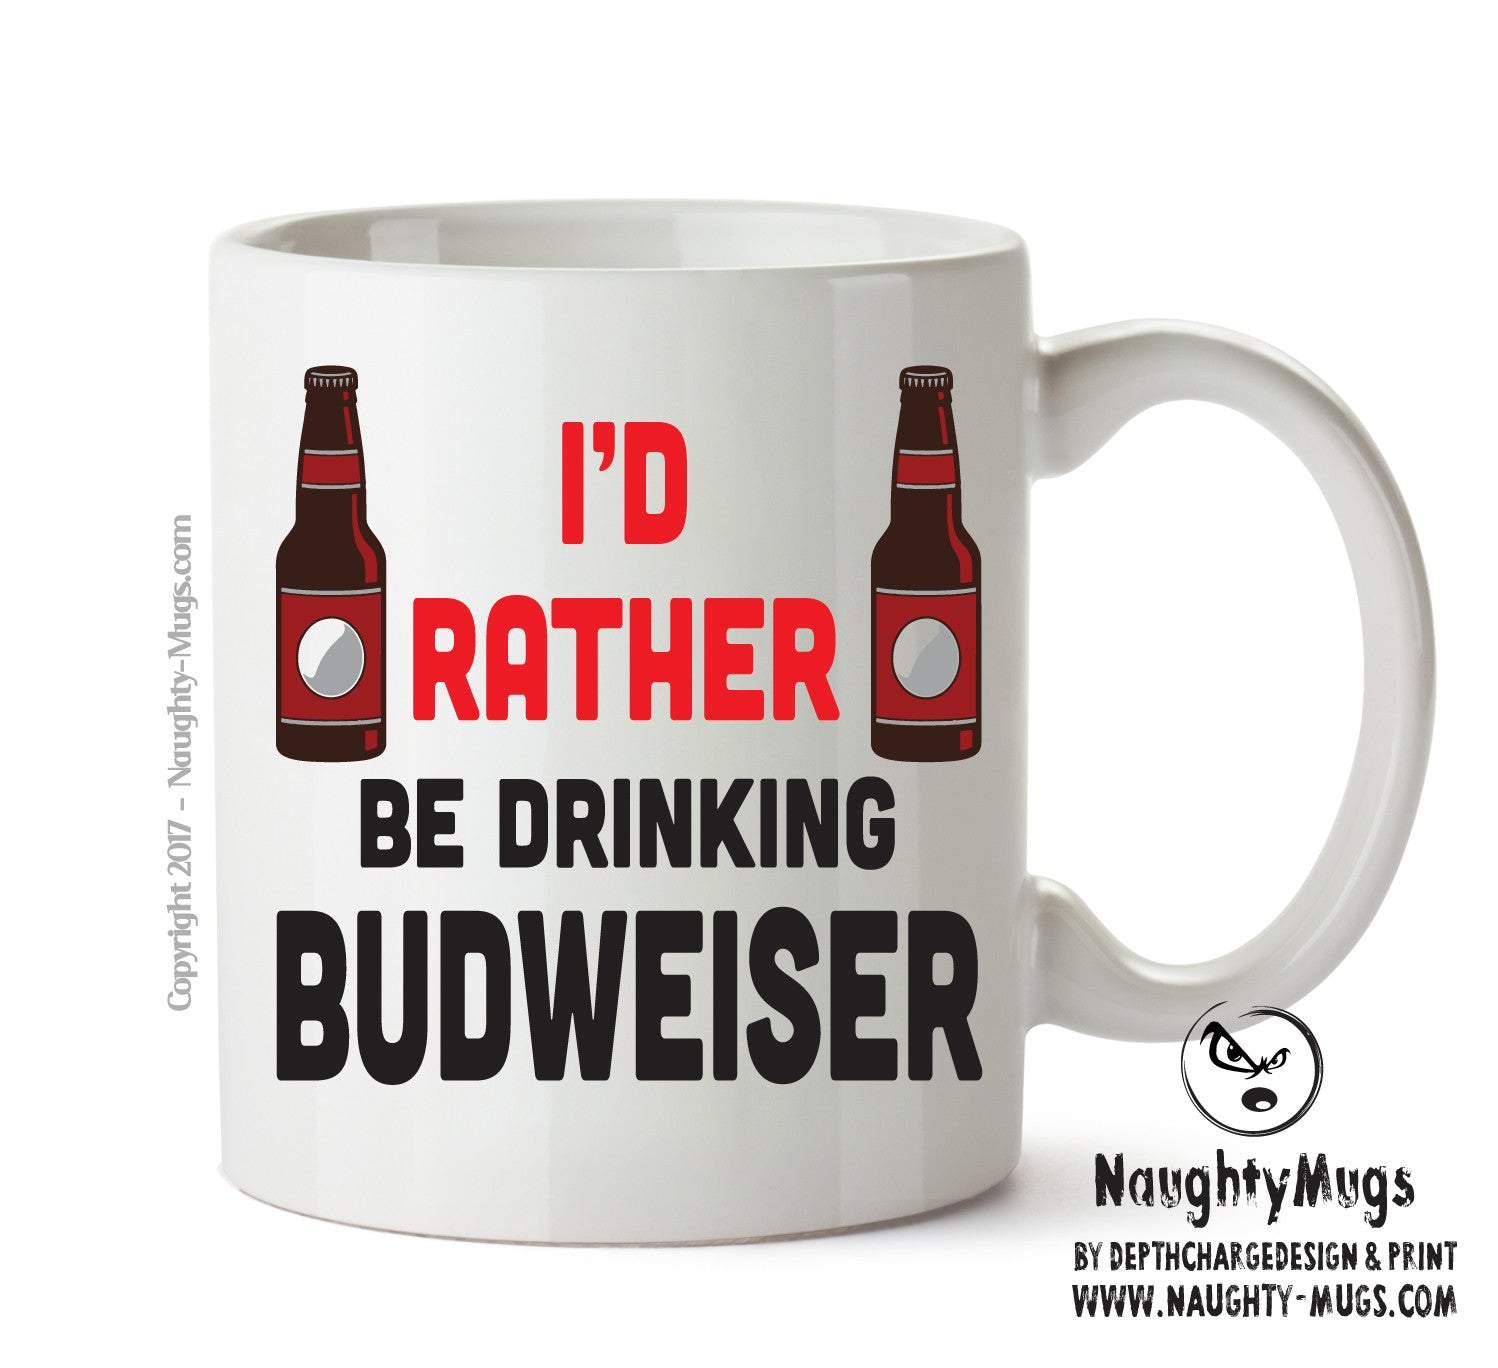 I D RATHER BE MUGS